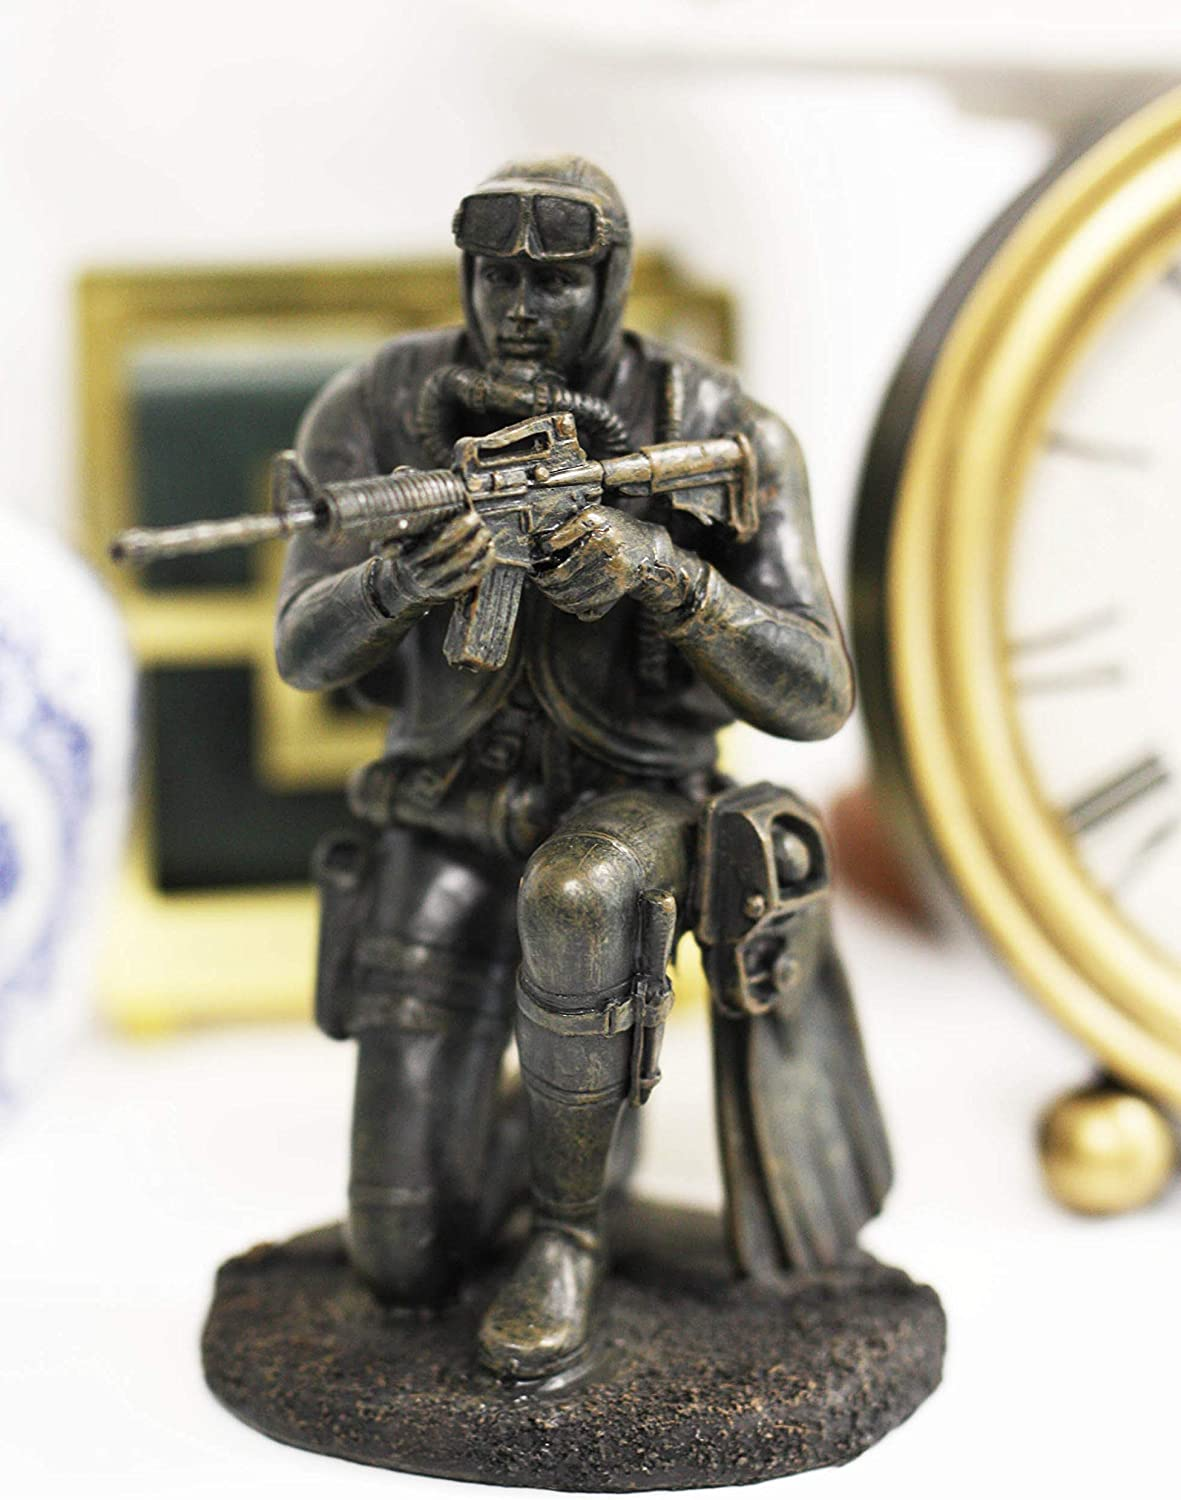 """Ebros Gift Battlefield Kneeling Navy Seal Diver Soldier Taking Aim with Rifle Statue 6"""" H Honor and Valor Military War Combat Mission Unit Infantry at Arms with Scuba Mask and Fins Figurine"""